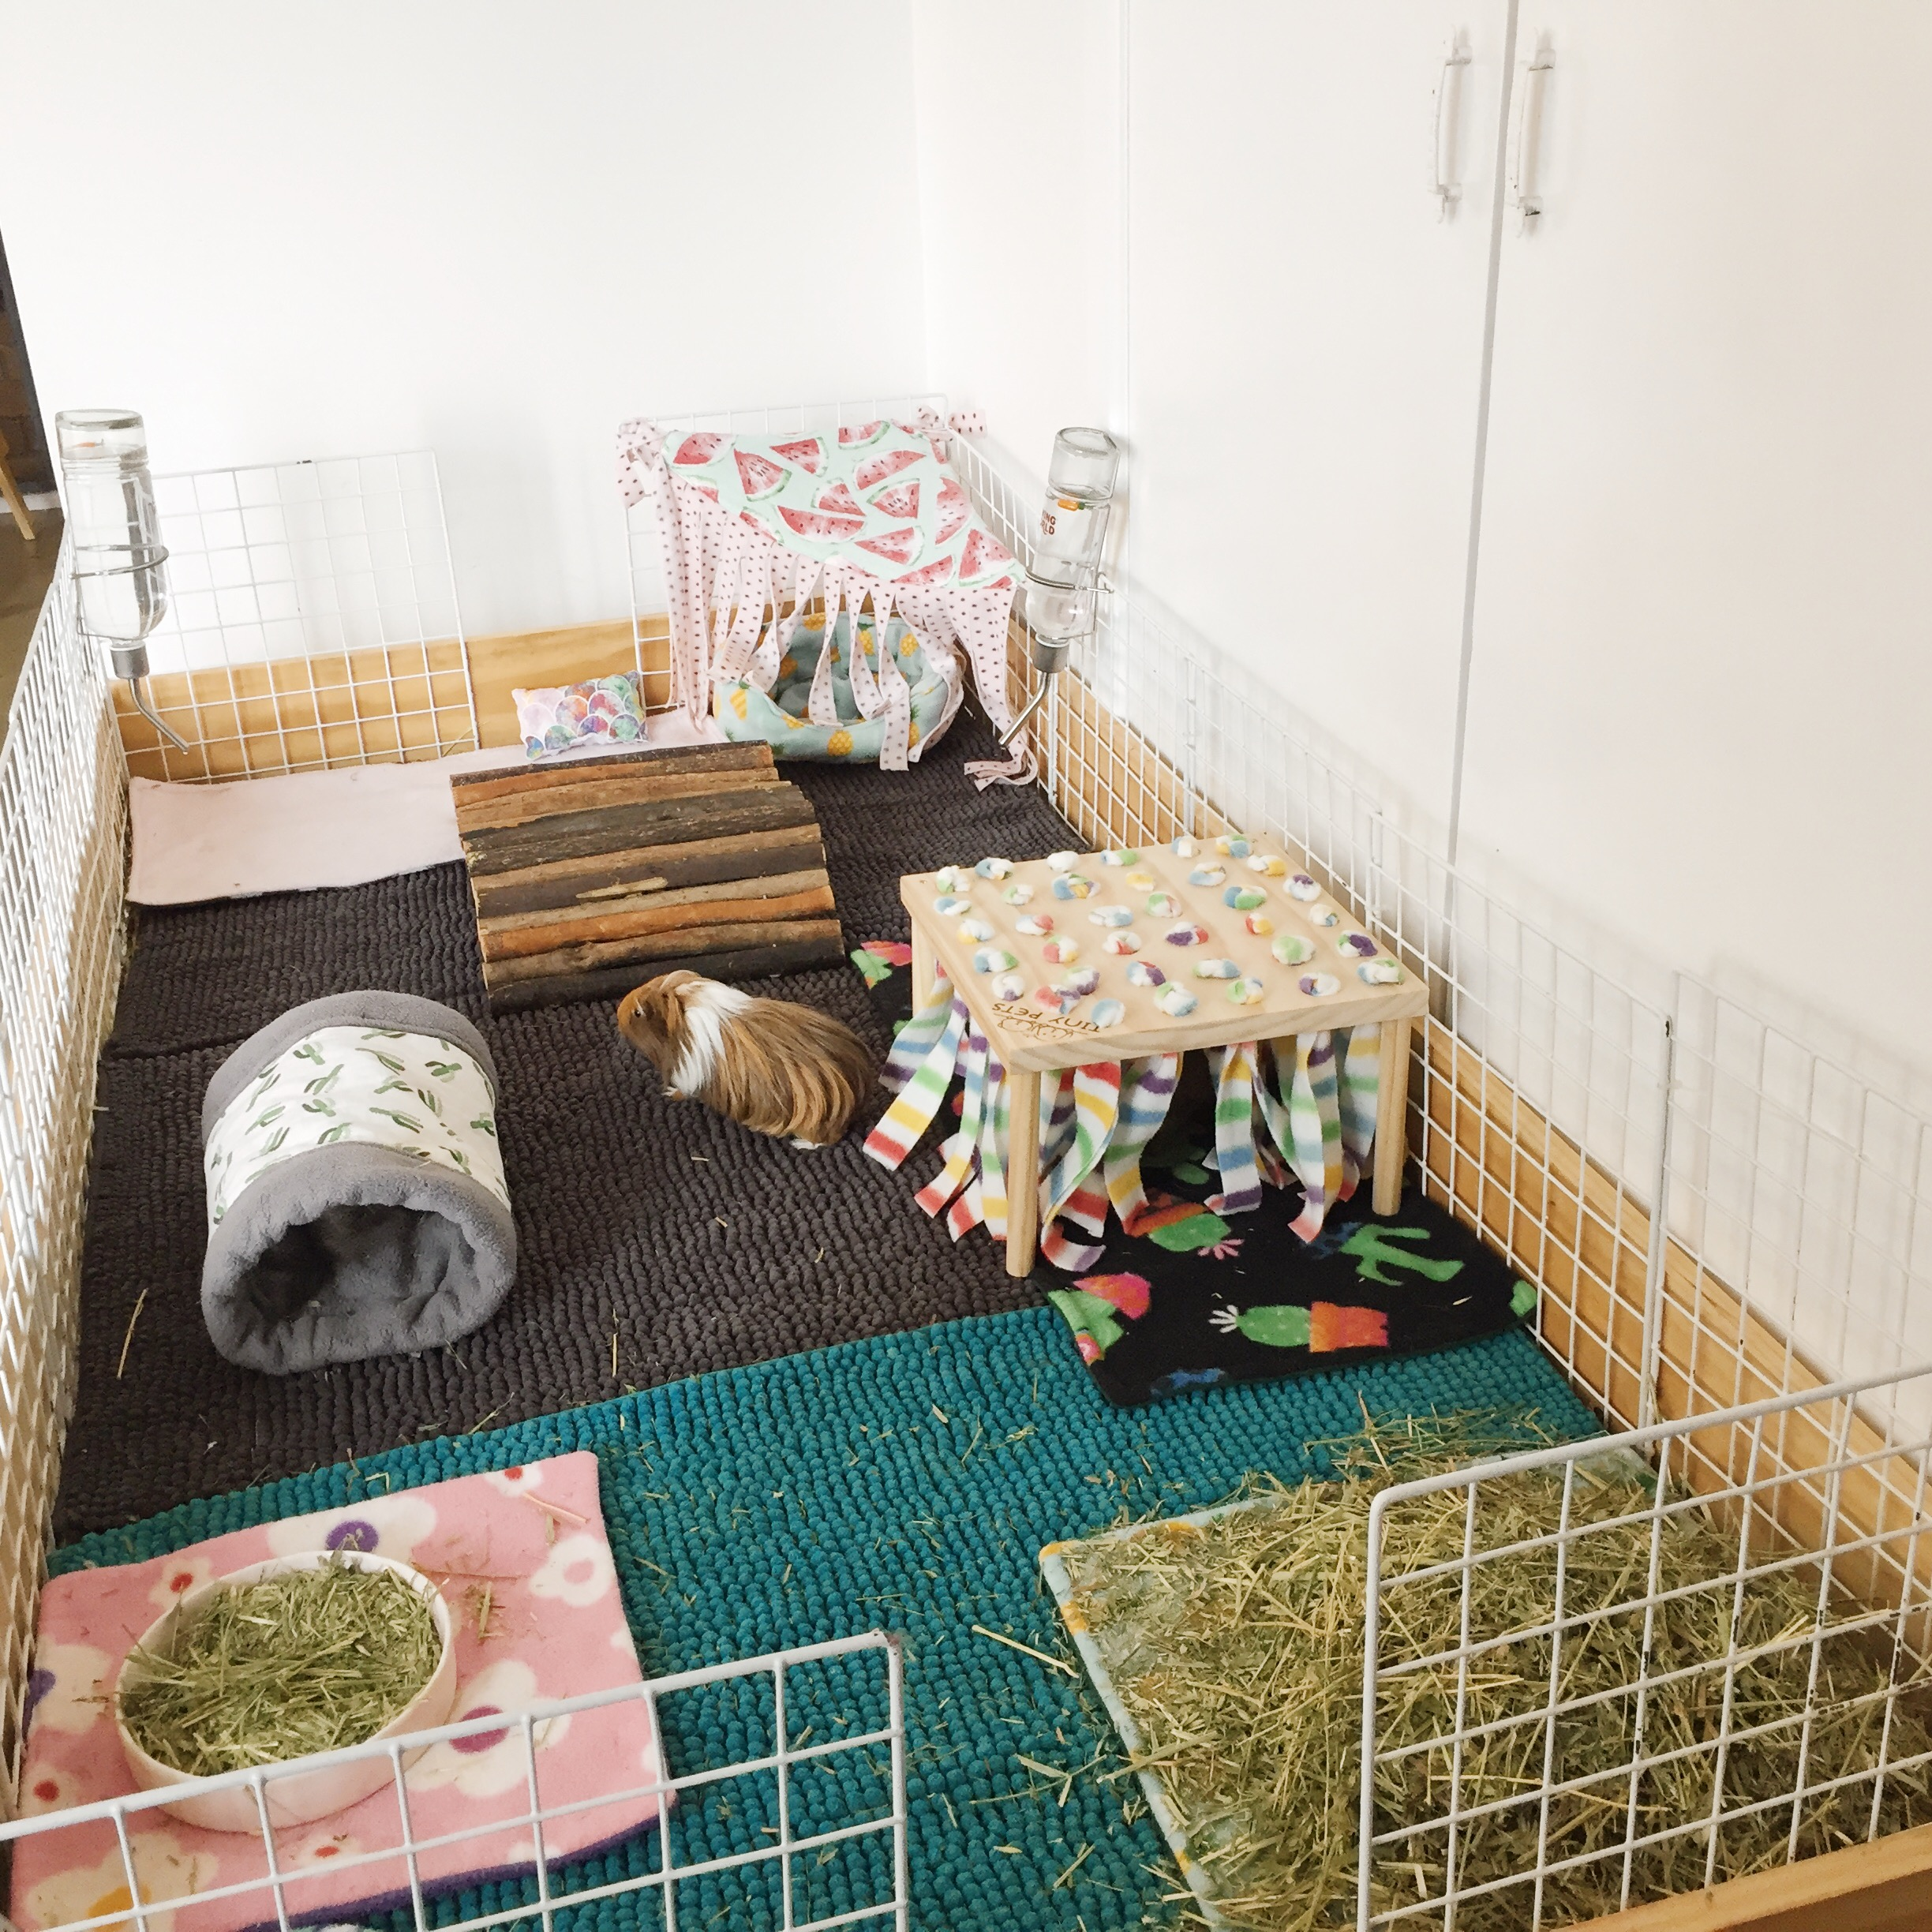 Olive and Ziggys guinea pig cage is handmade from plywood and a large wooden base. On the inside of the cage are three bath mats as liners, a wooden tunnel, a wooden hidey hut, some fleece cosy items and two large piles of hay and two water bottles.